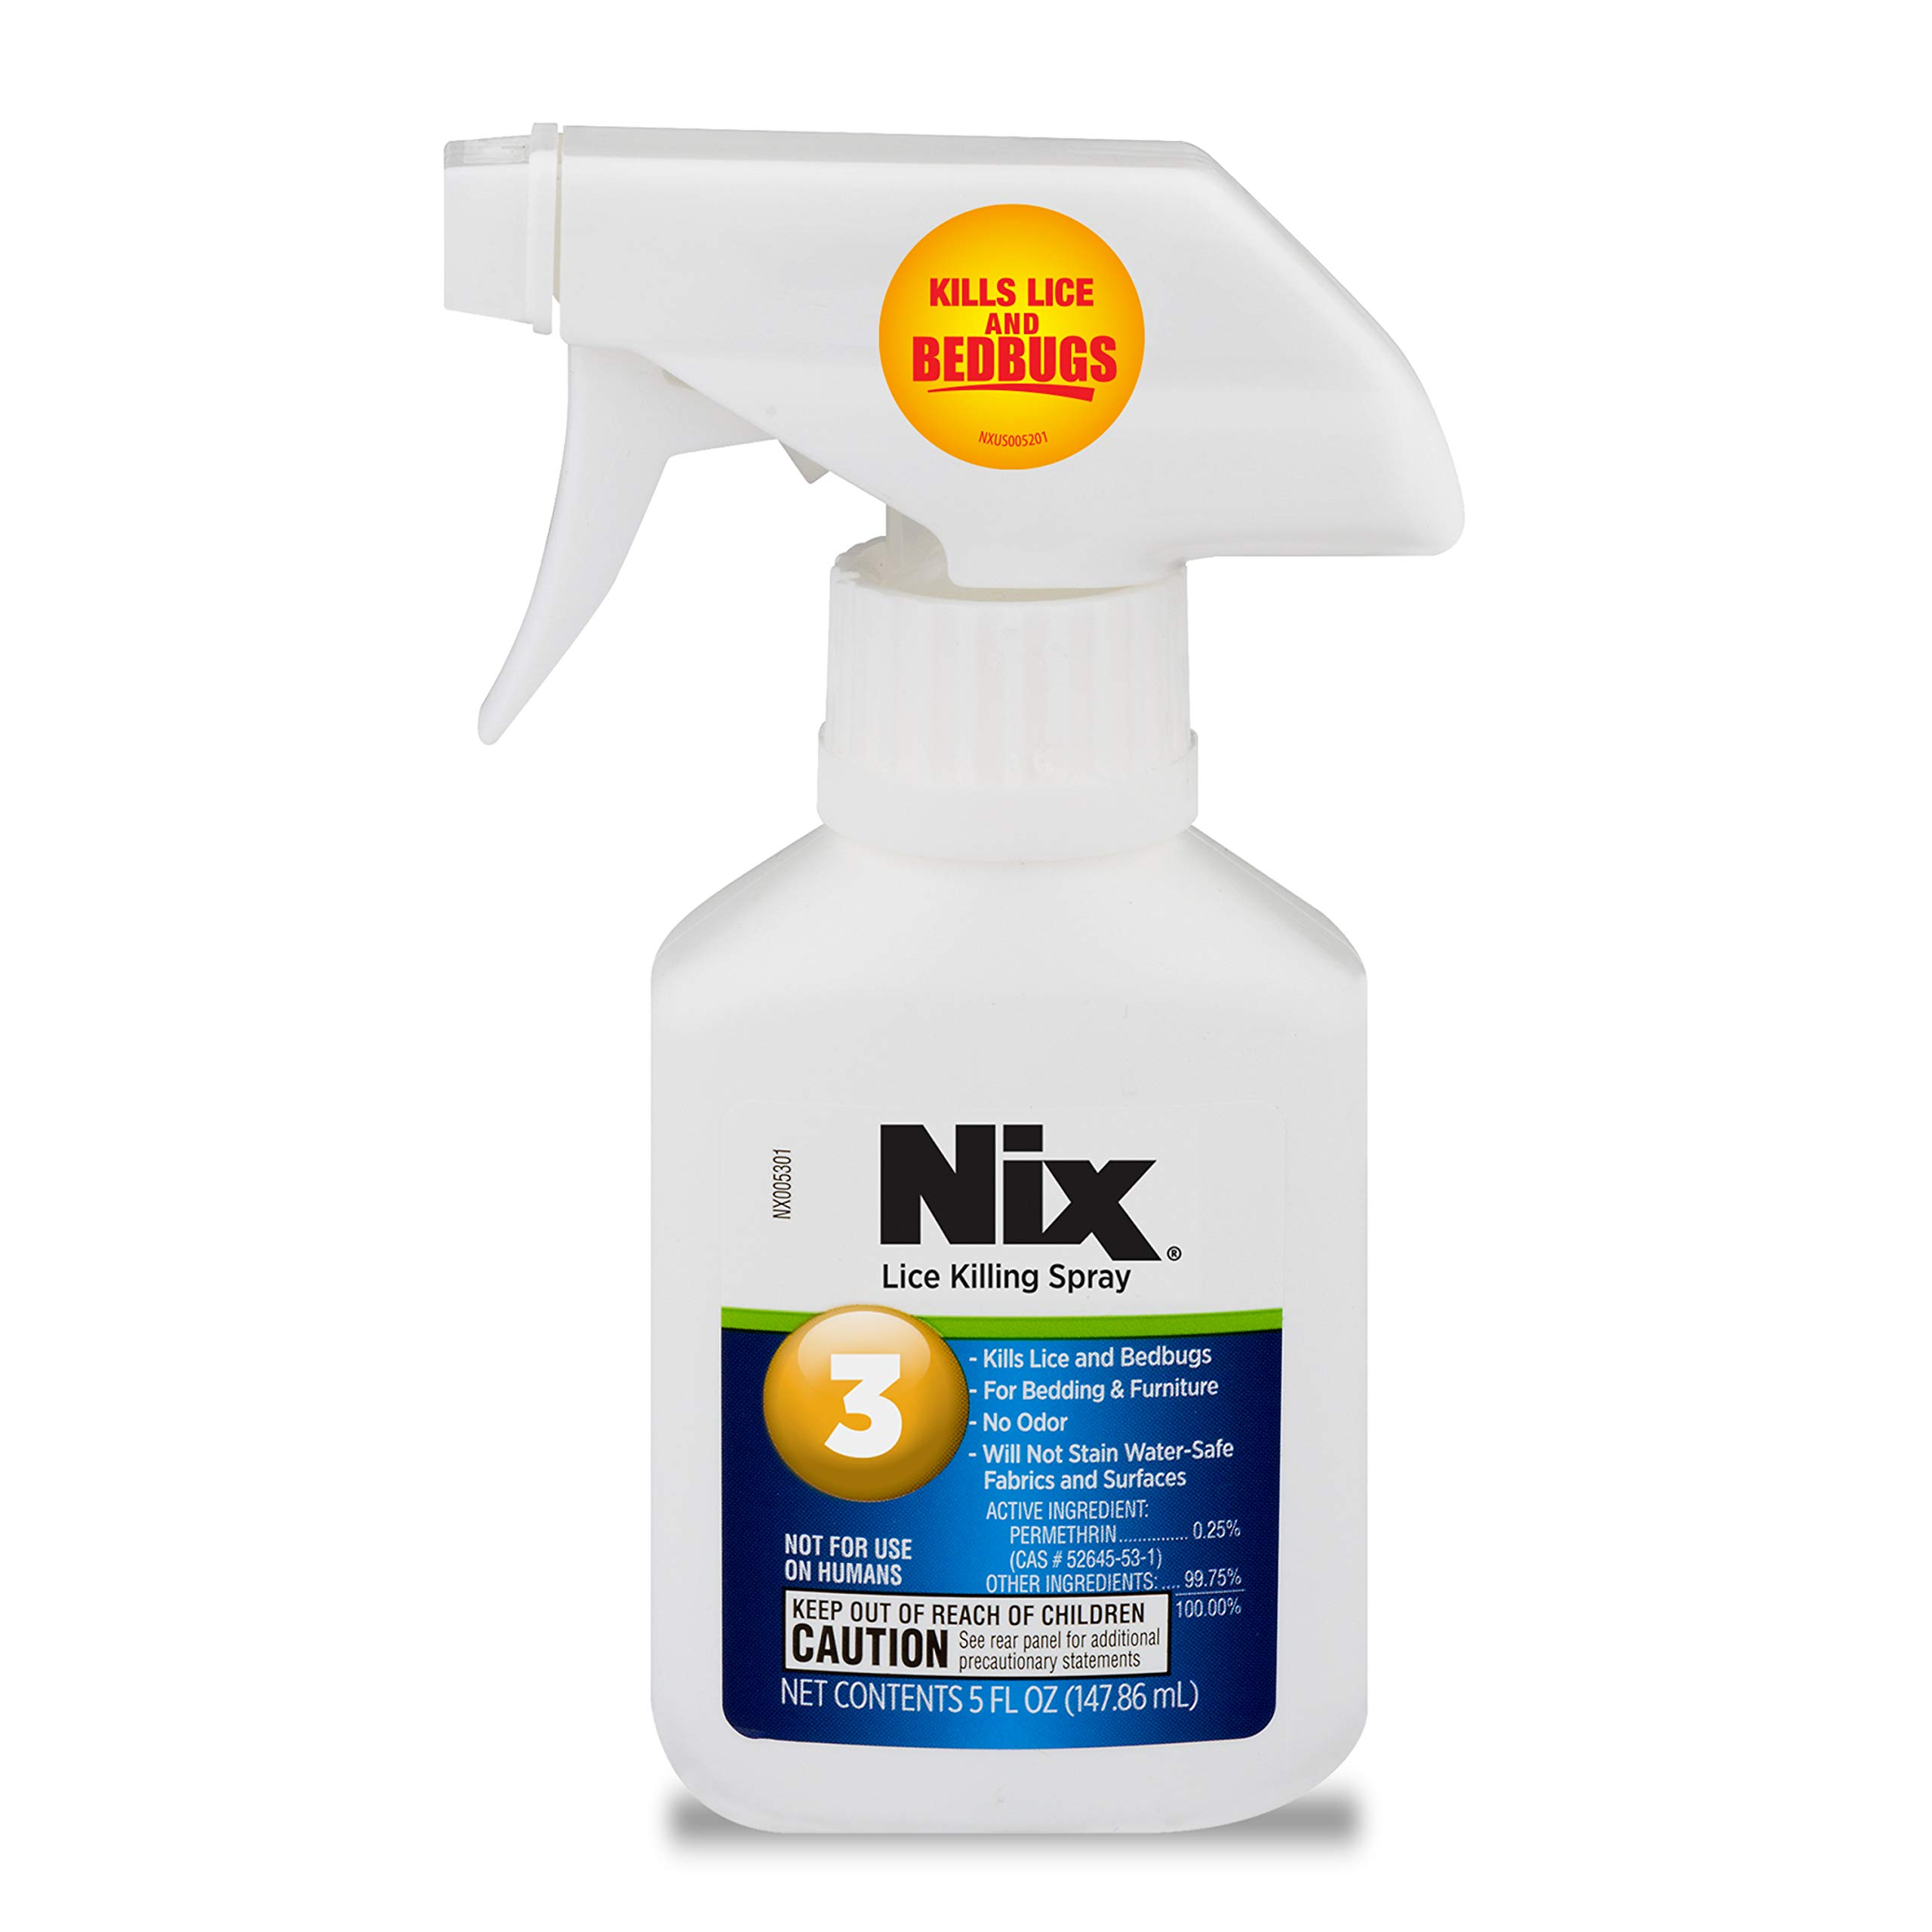 Nix Lice & Bed Bug Killing Spray for Home, Bedding & Furniture, Transparent, 5 Fl.Oz